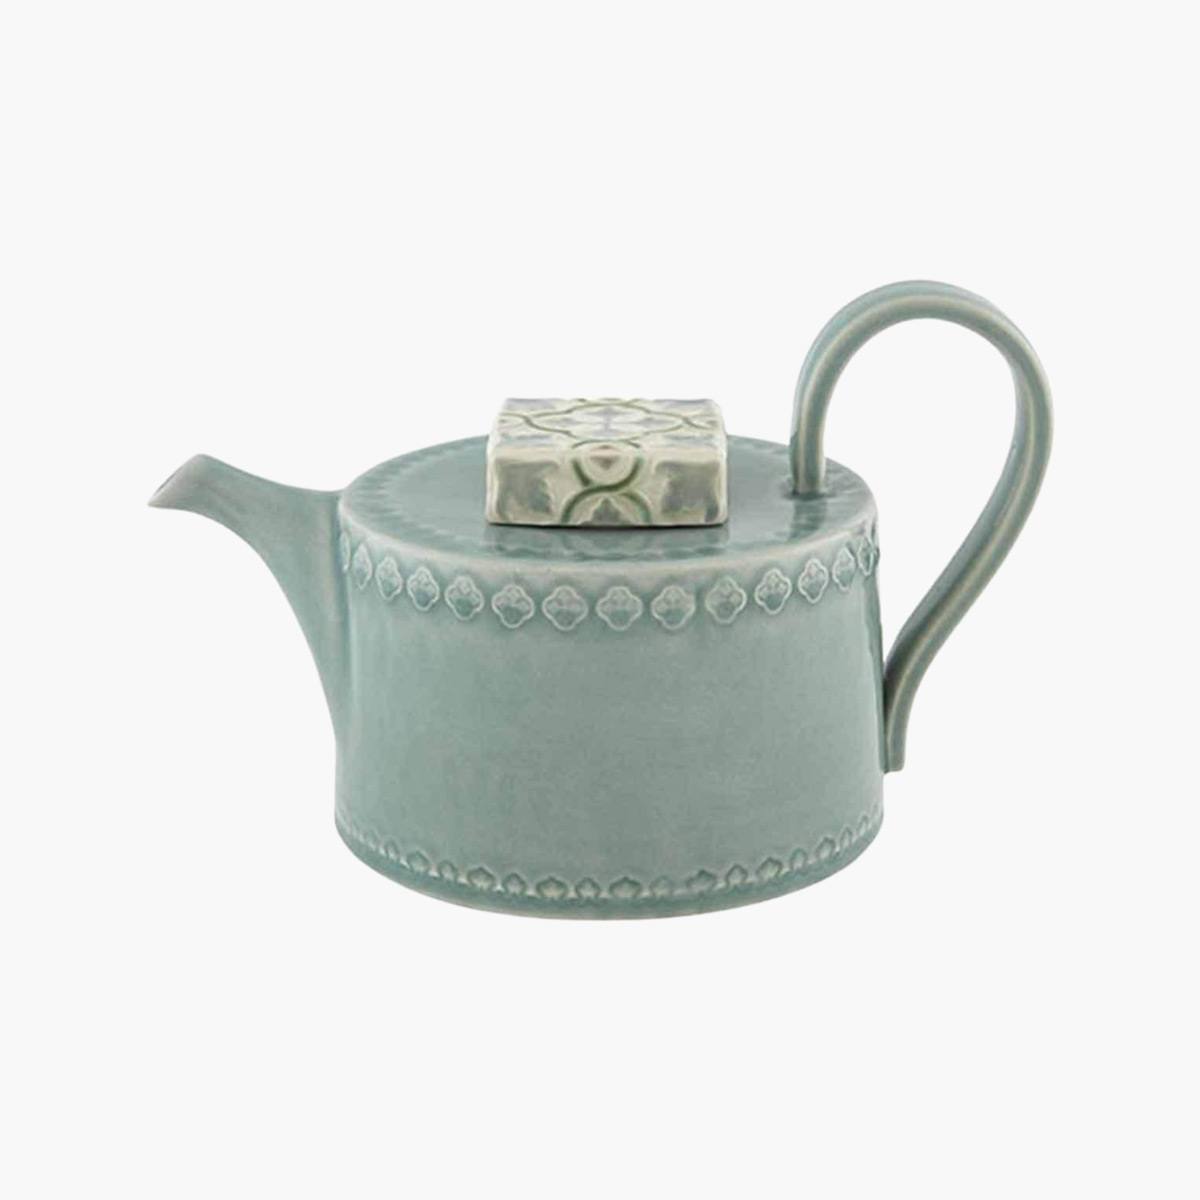 A ceramic Nova blue tea pot.